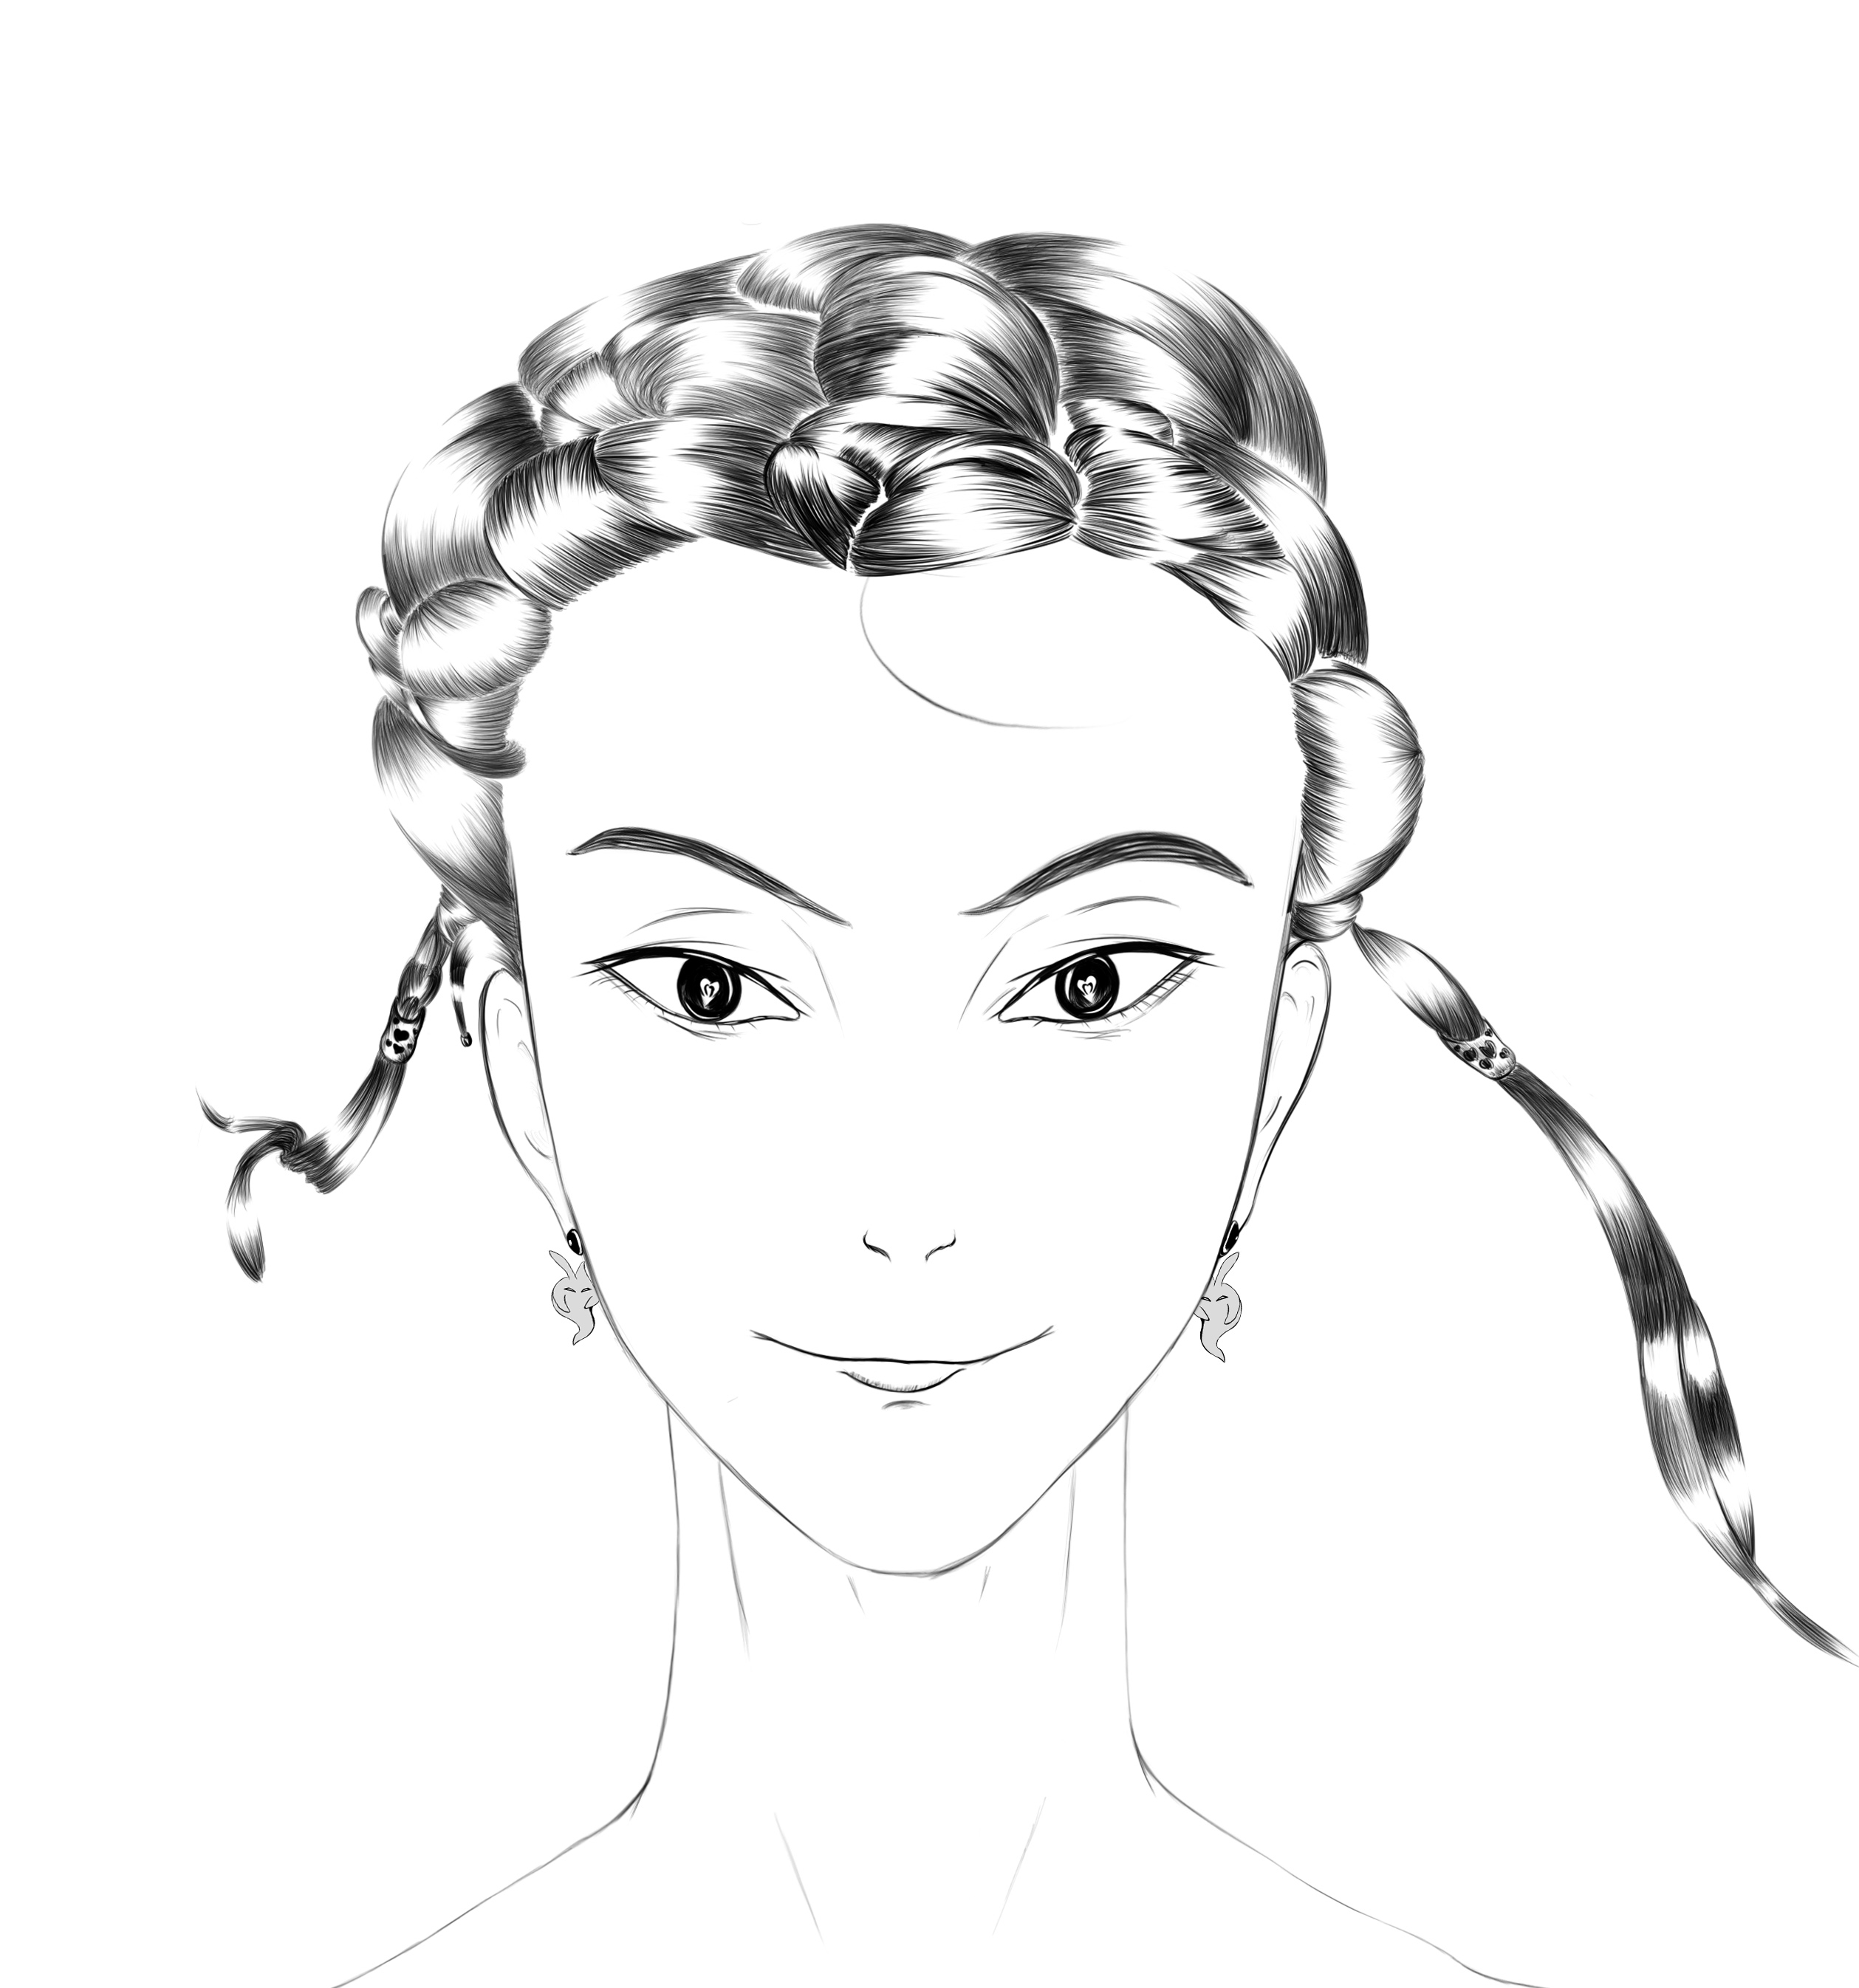 The Hairstylish-digital sketches Showflipper